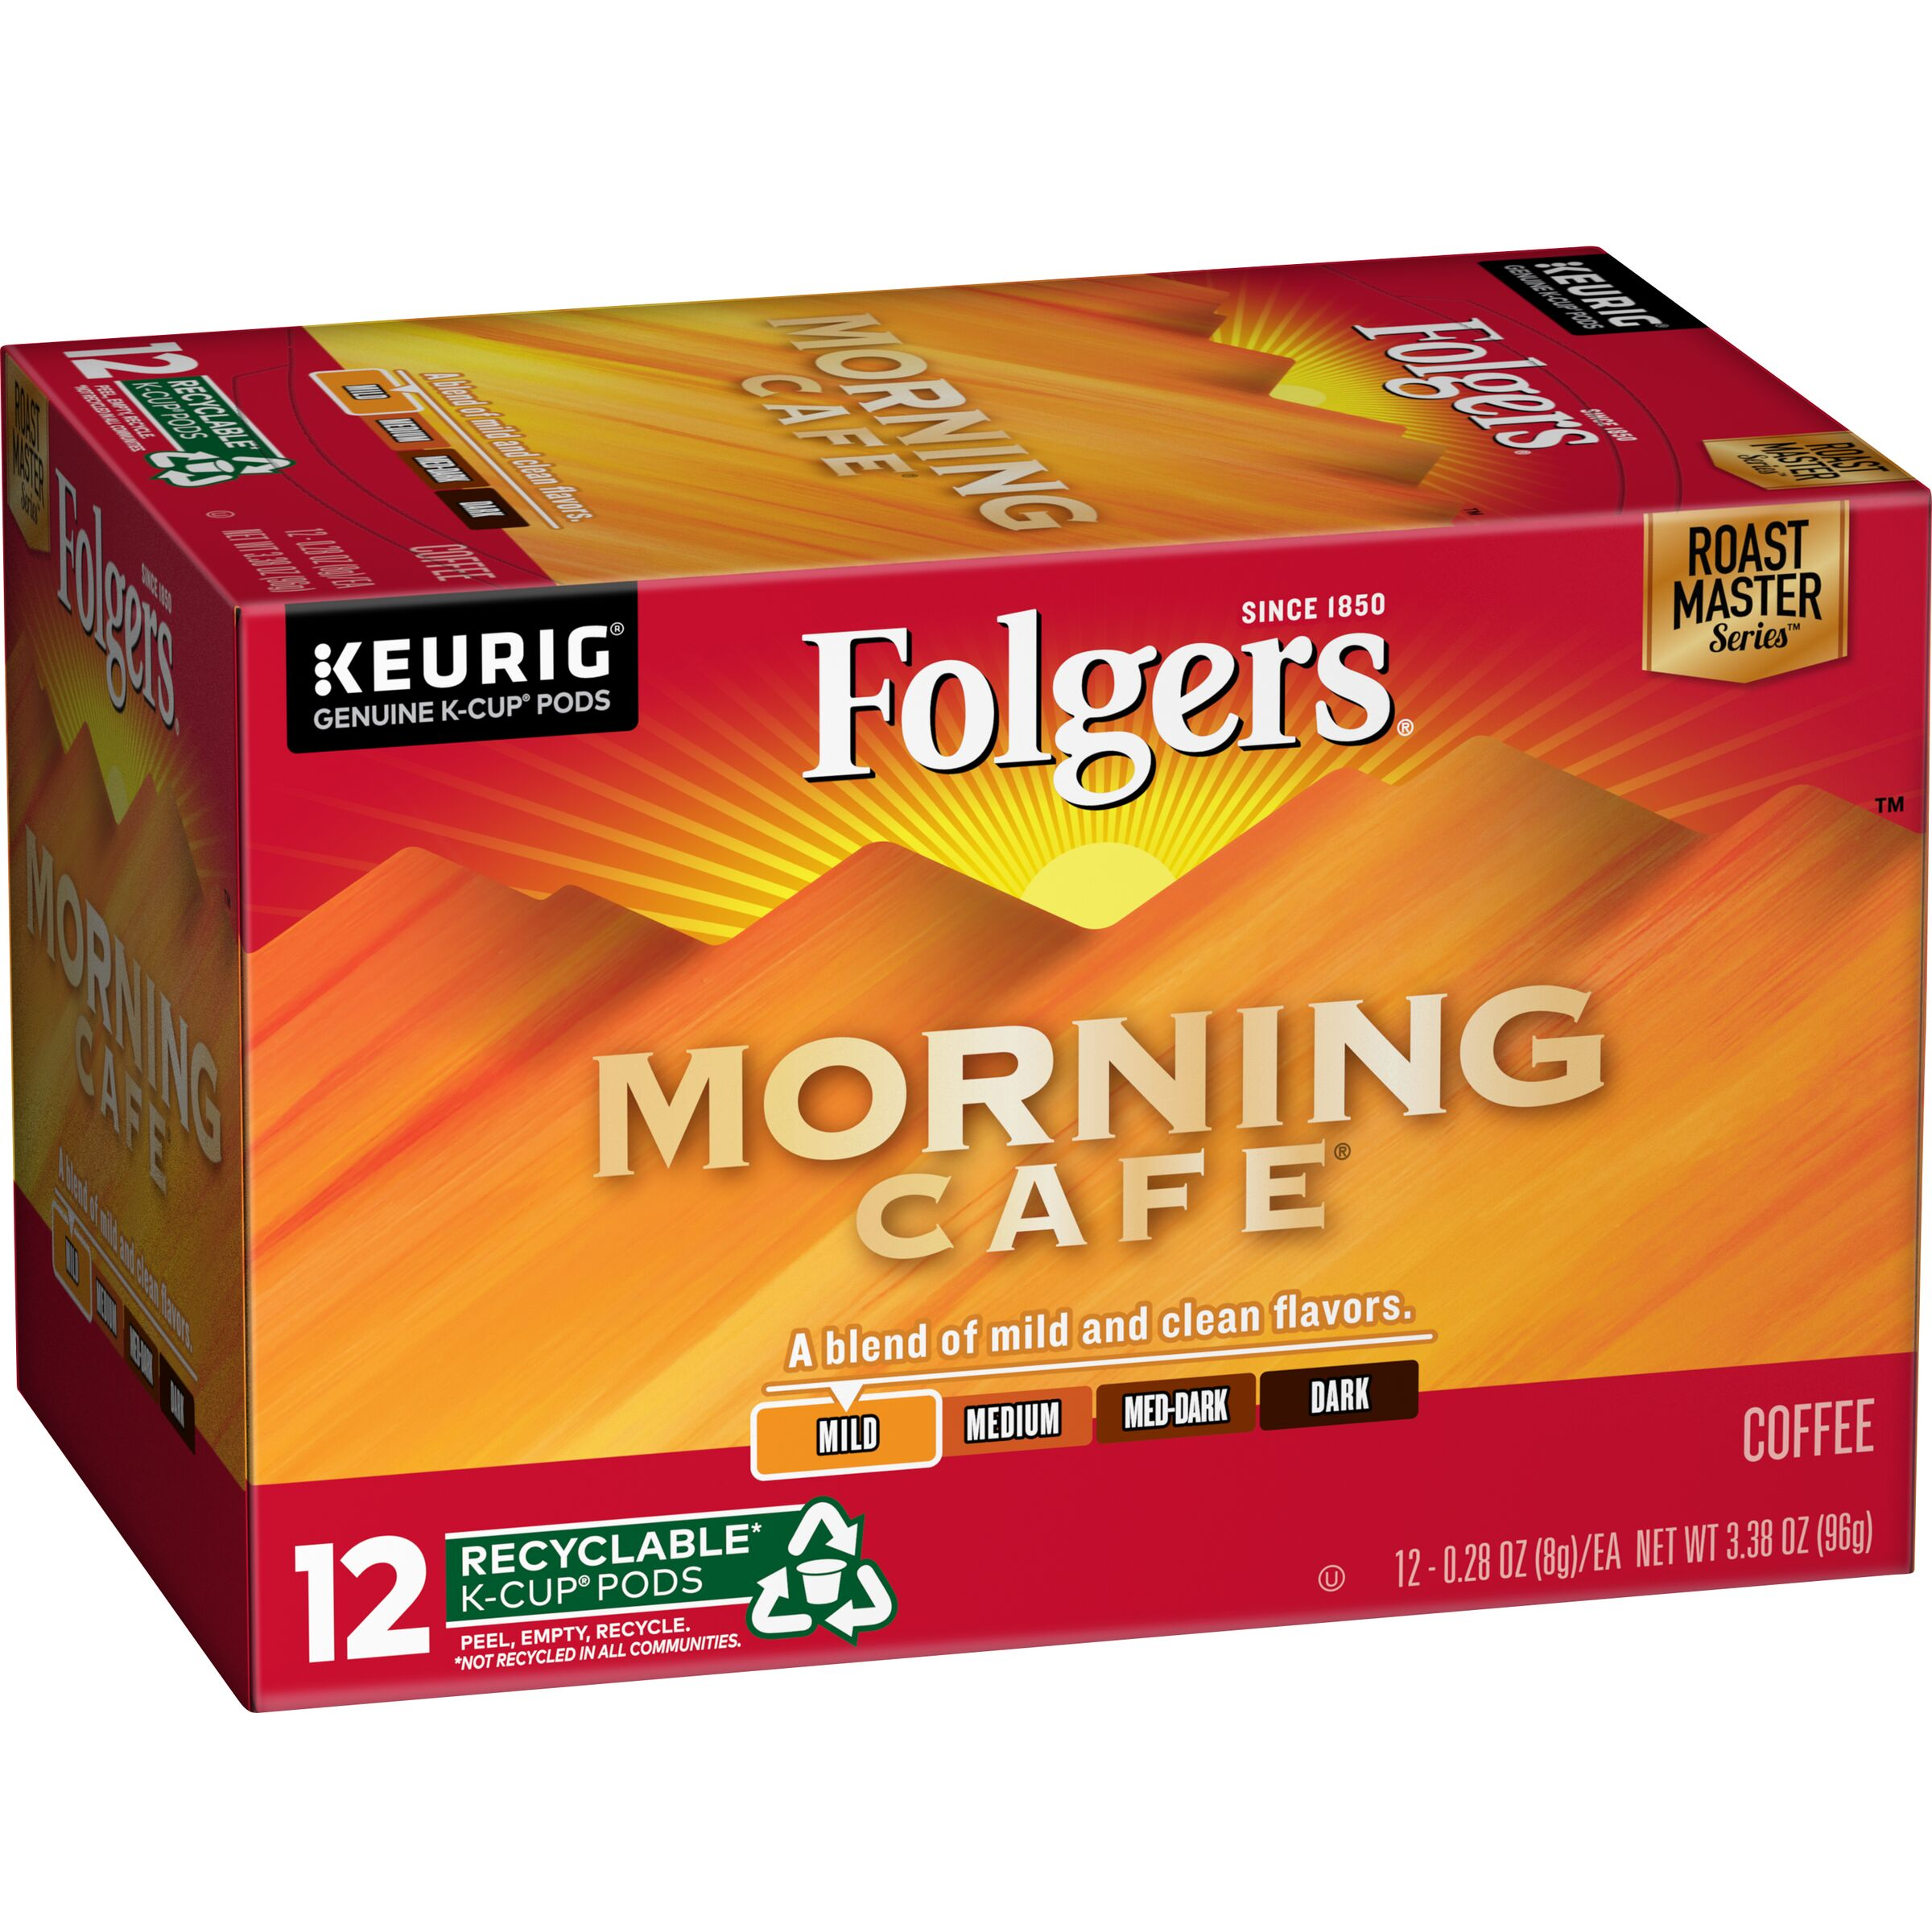 Folgers  Morning Cafe® Coffee K-Cup Pods, 12 count